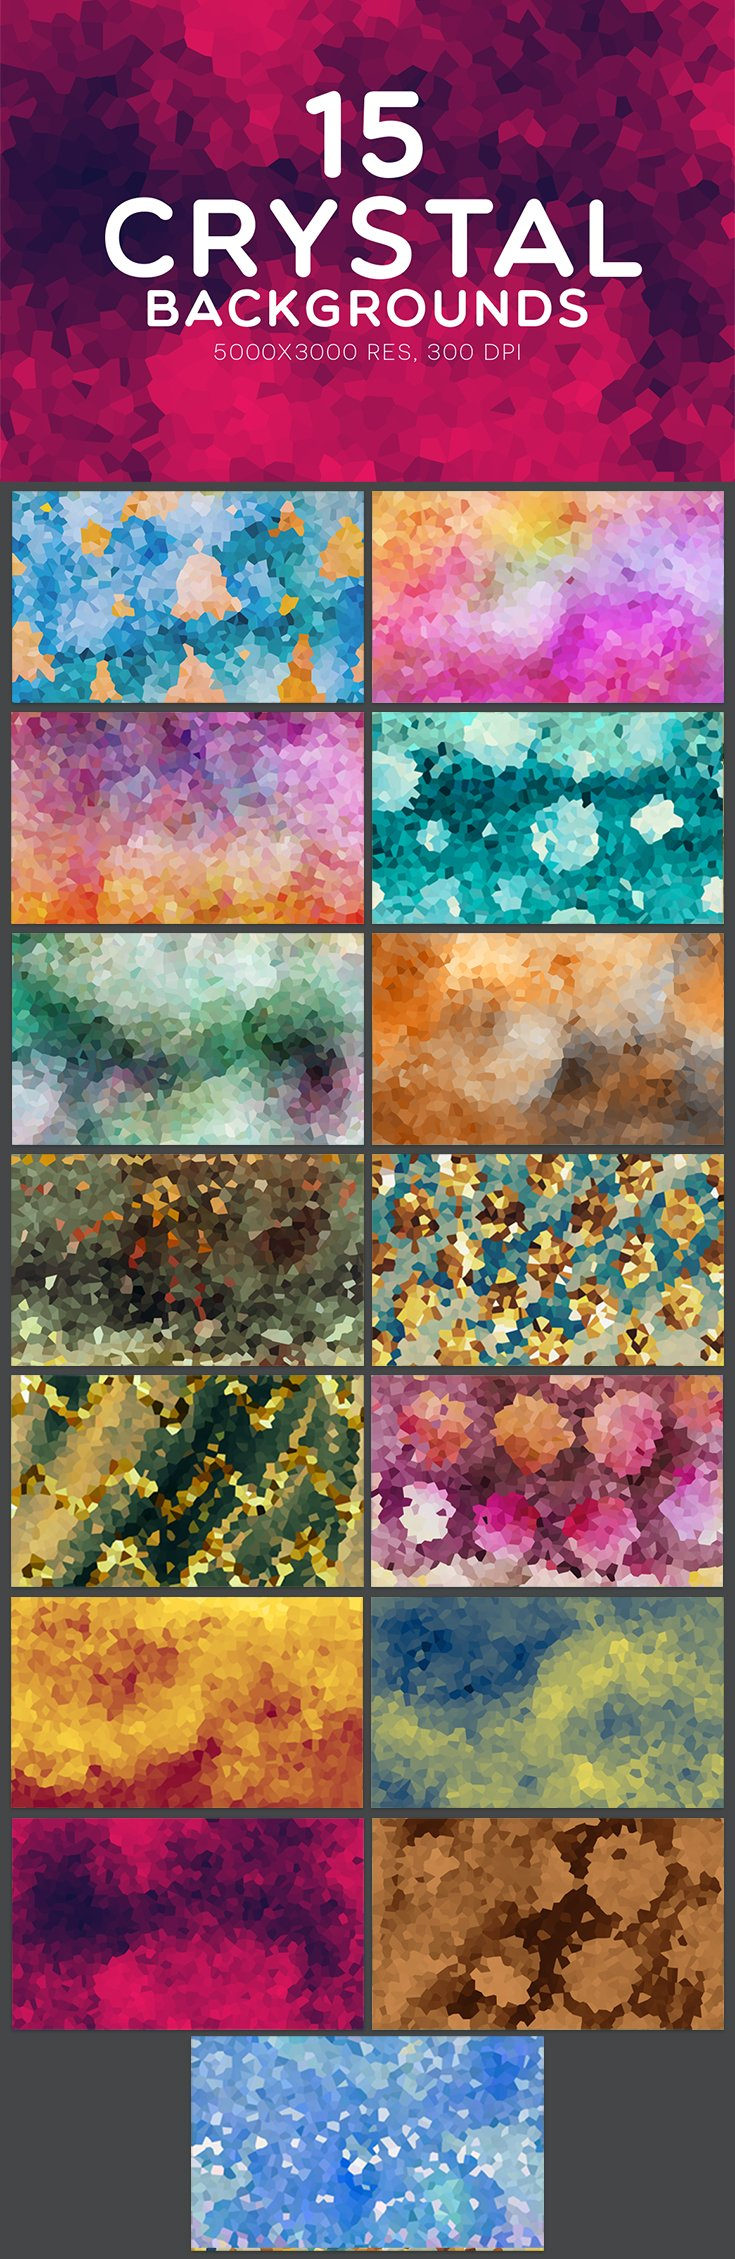 15 Free #Crystal #backgrounds collection is great for #print #paper products, #handmade #craft items, #web #design, scrap booking, etc. Enjoy them!